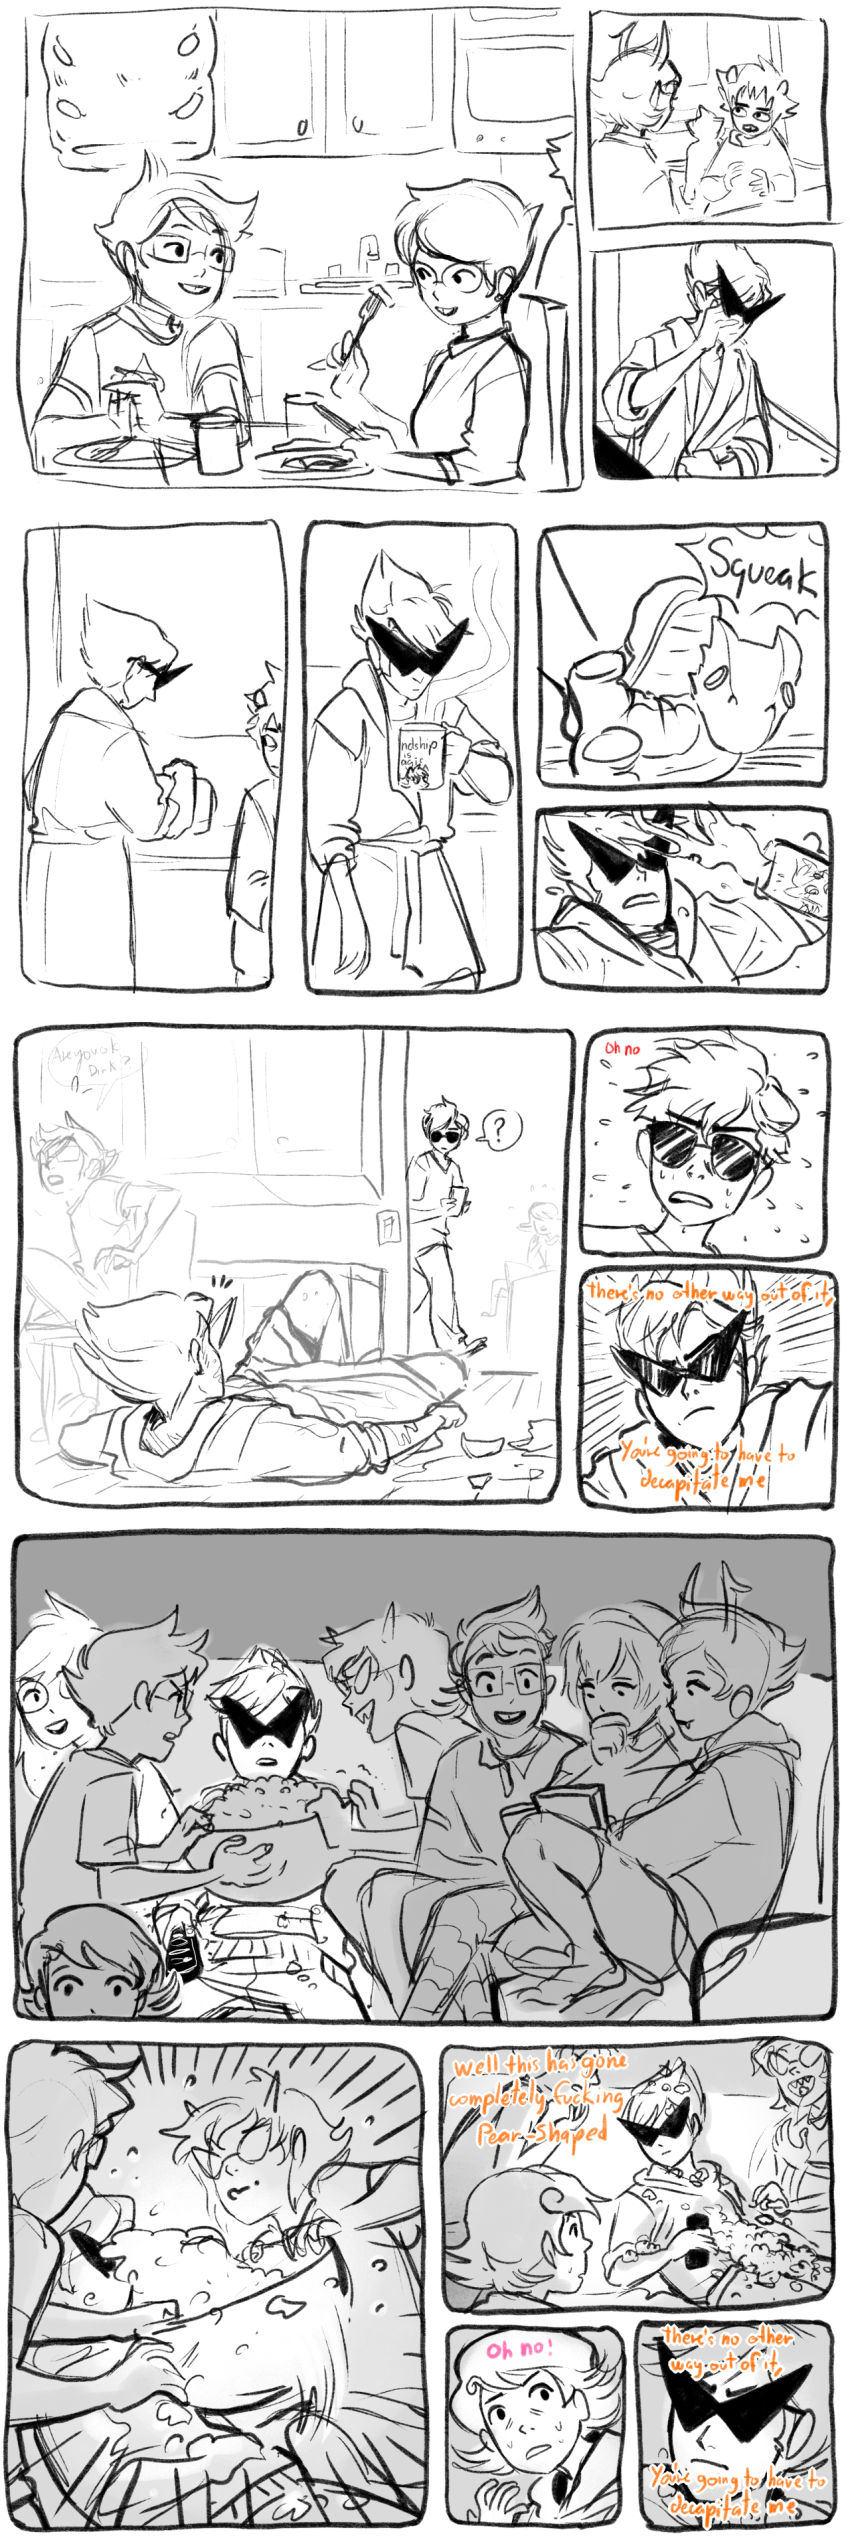 aei-sb all_kids alpha_kids beta_kids beverage comic couch dave_strider dirk_strider food huge jade_harley jake_english jane_crocker john_egbert kanaya_maryam karkat_vantas meme my_little_pony rose_lalonde roxy_lalonde scalemates sketch terezi_pyrope text